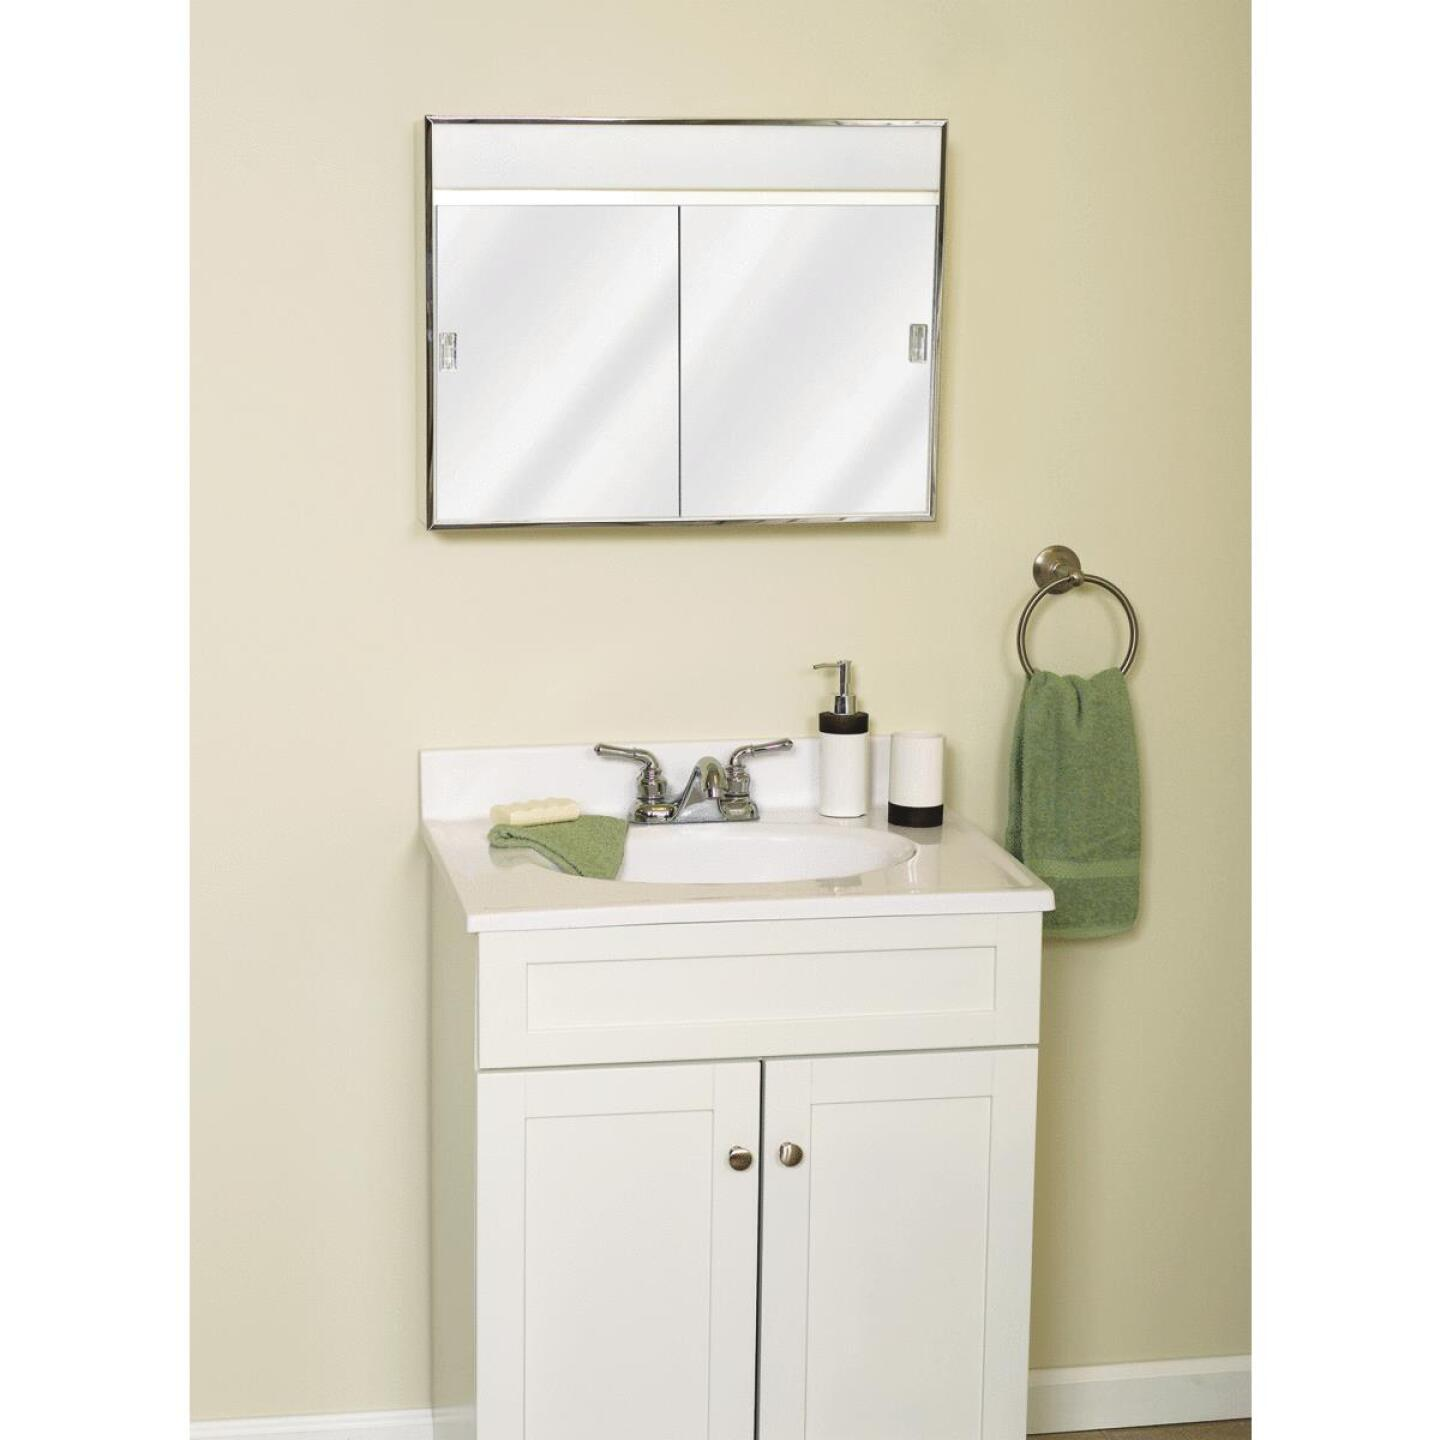 Zenith Stainless Steel 23.5 In. W x 18.5 In. H x 5.5 In. D Bi-View Surface Mount Lighted Medicine Cabinet Image 2